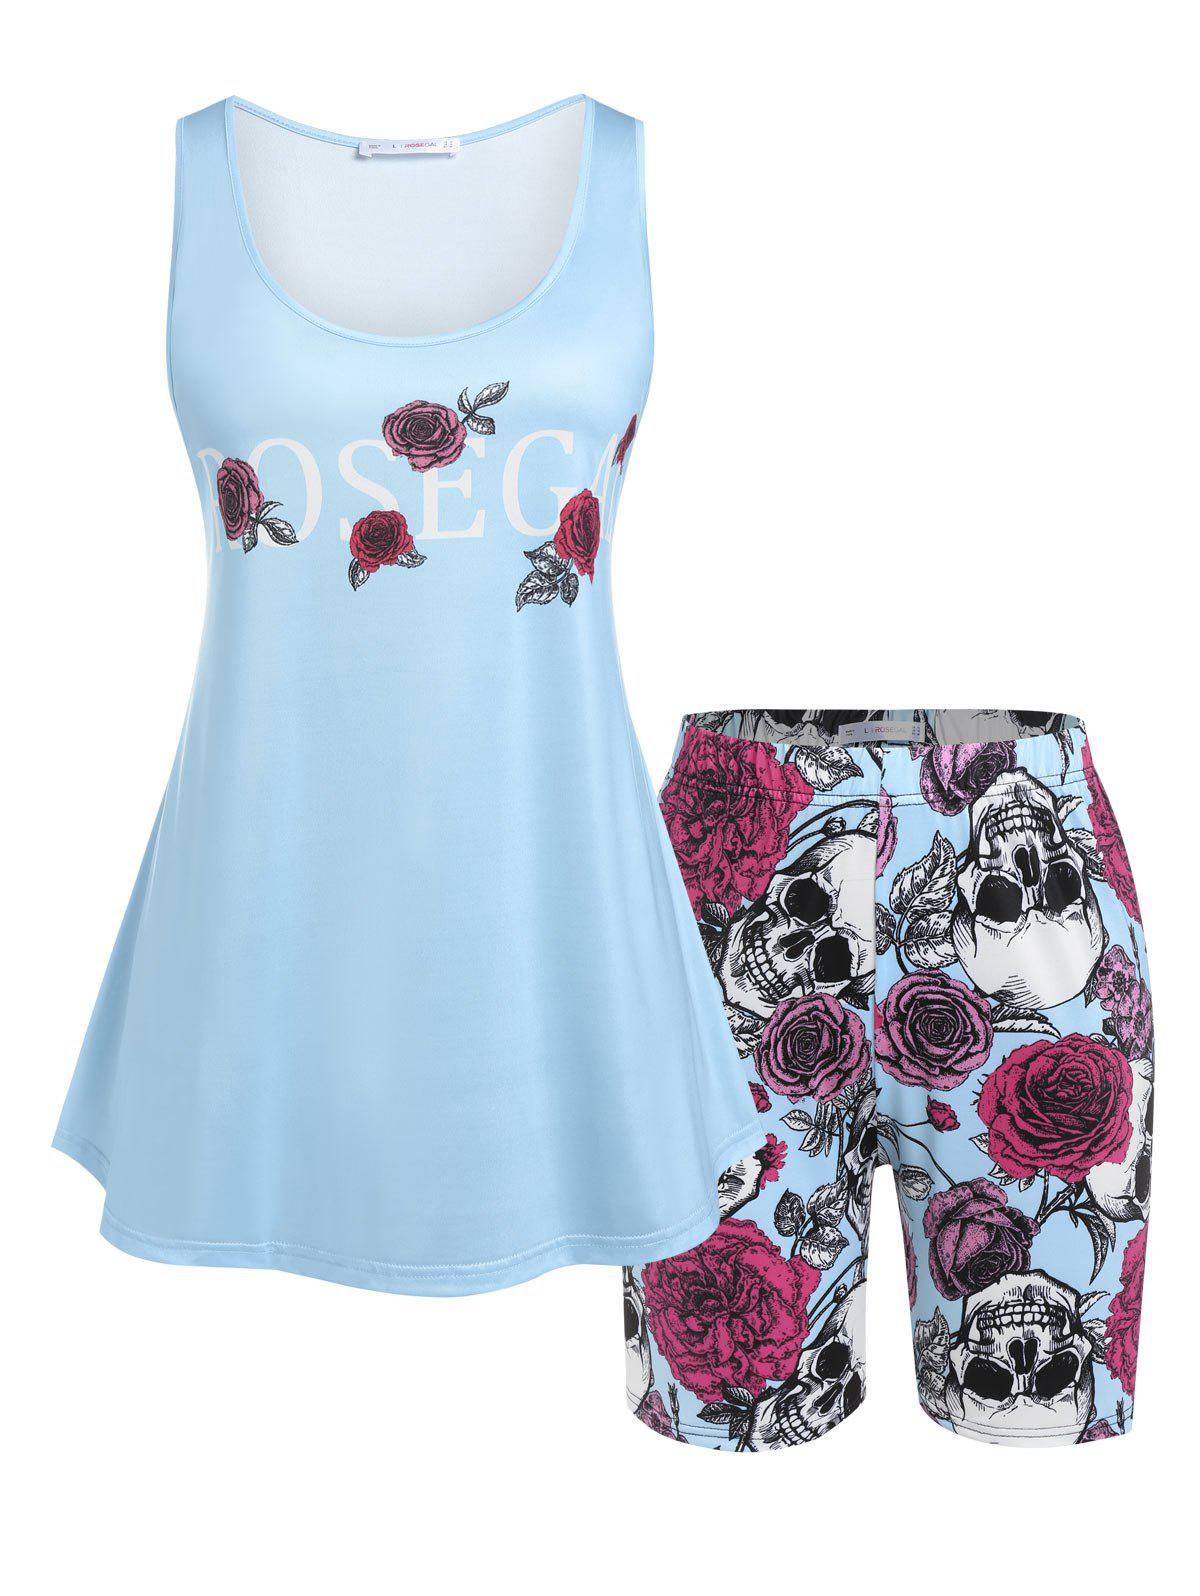 Plus Size Rose Skull Print Top and Shorts Pajamas Set - LIGHT BLUE 2X